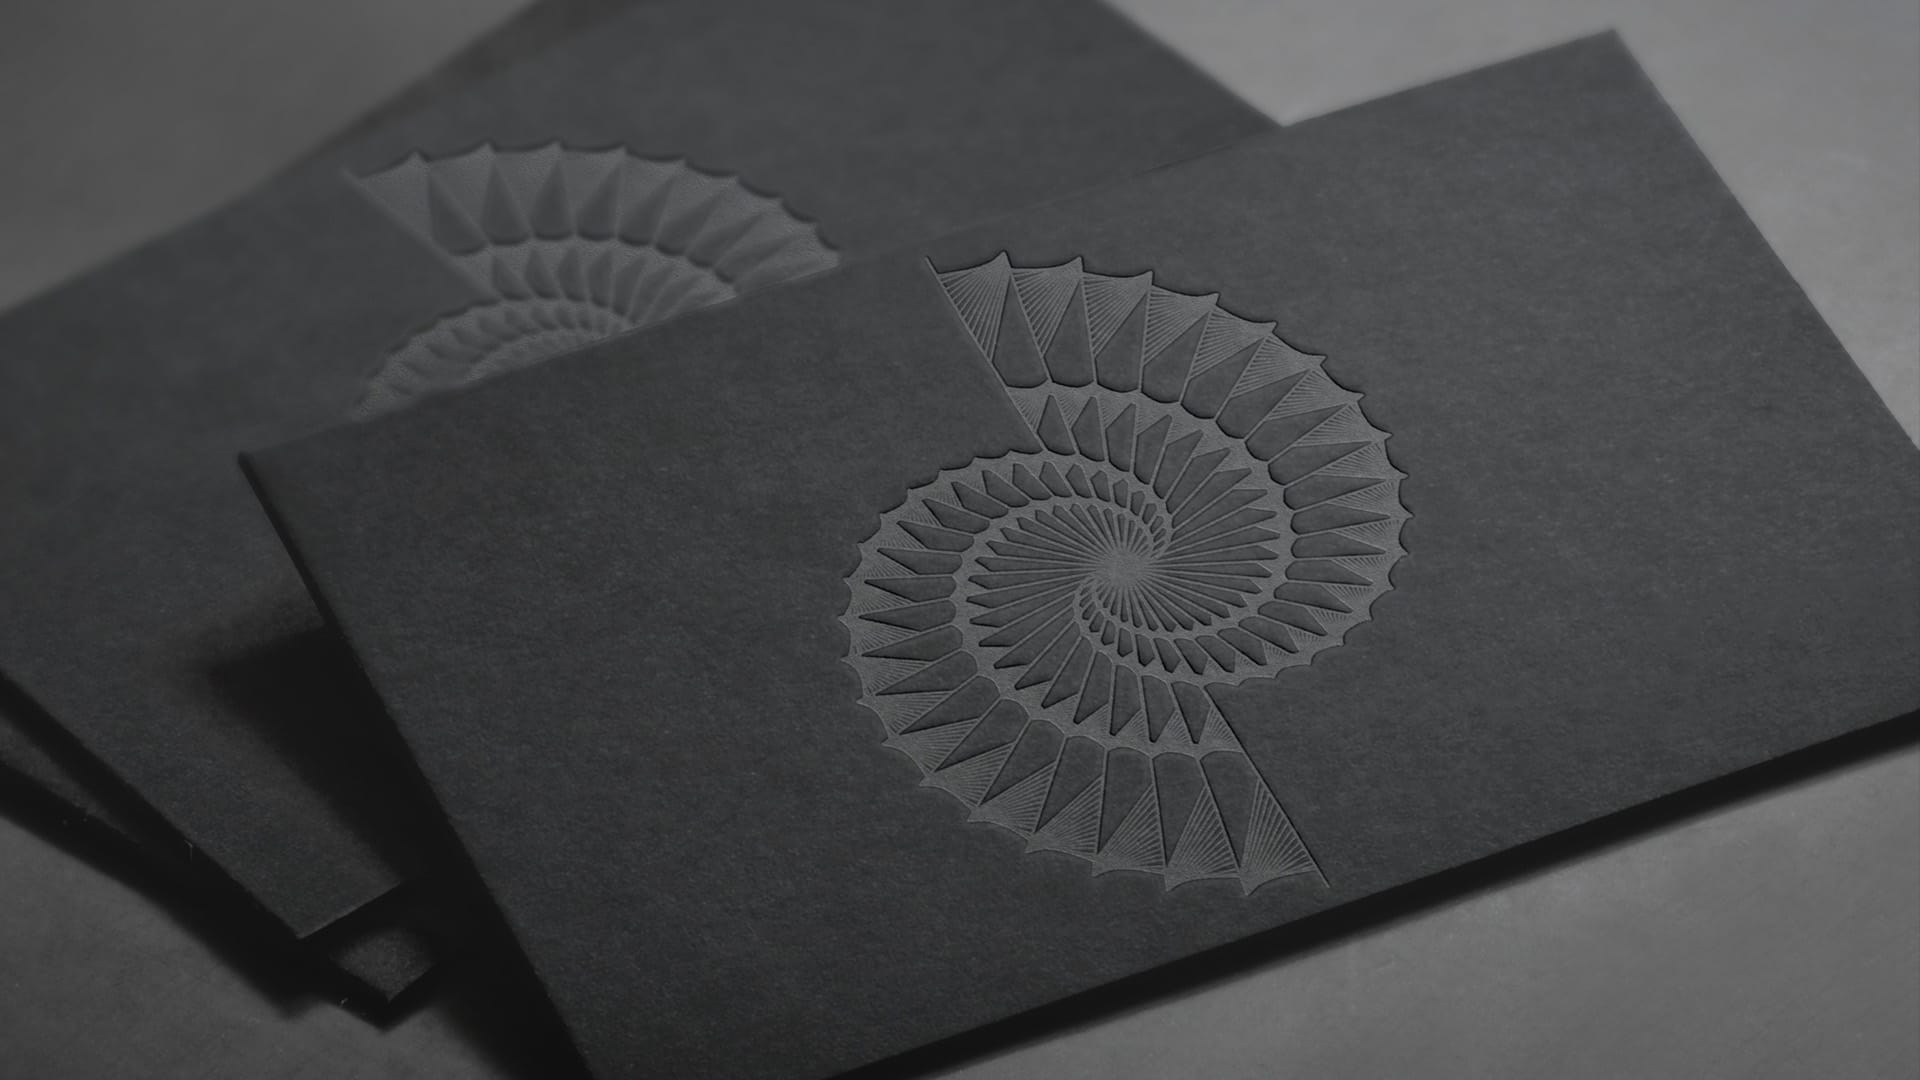 Black-Embossed-Logos-Serjan_Burlak_BiogenicDesign-2